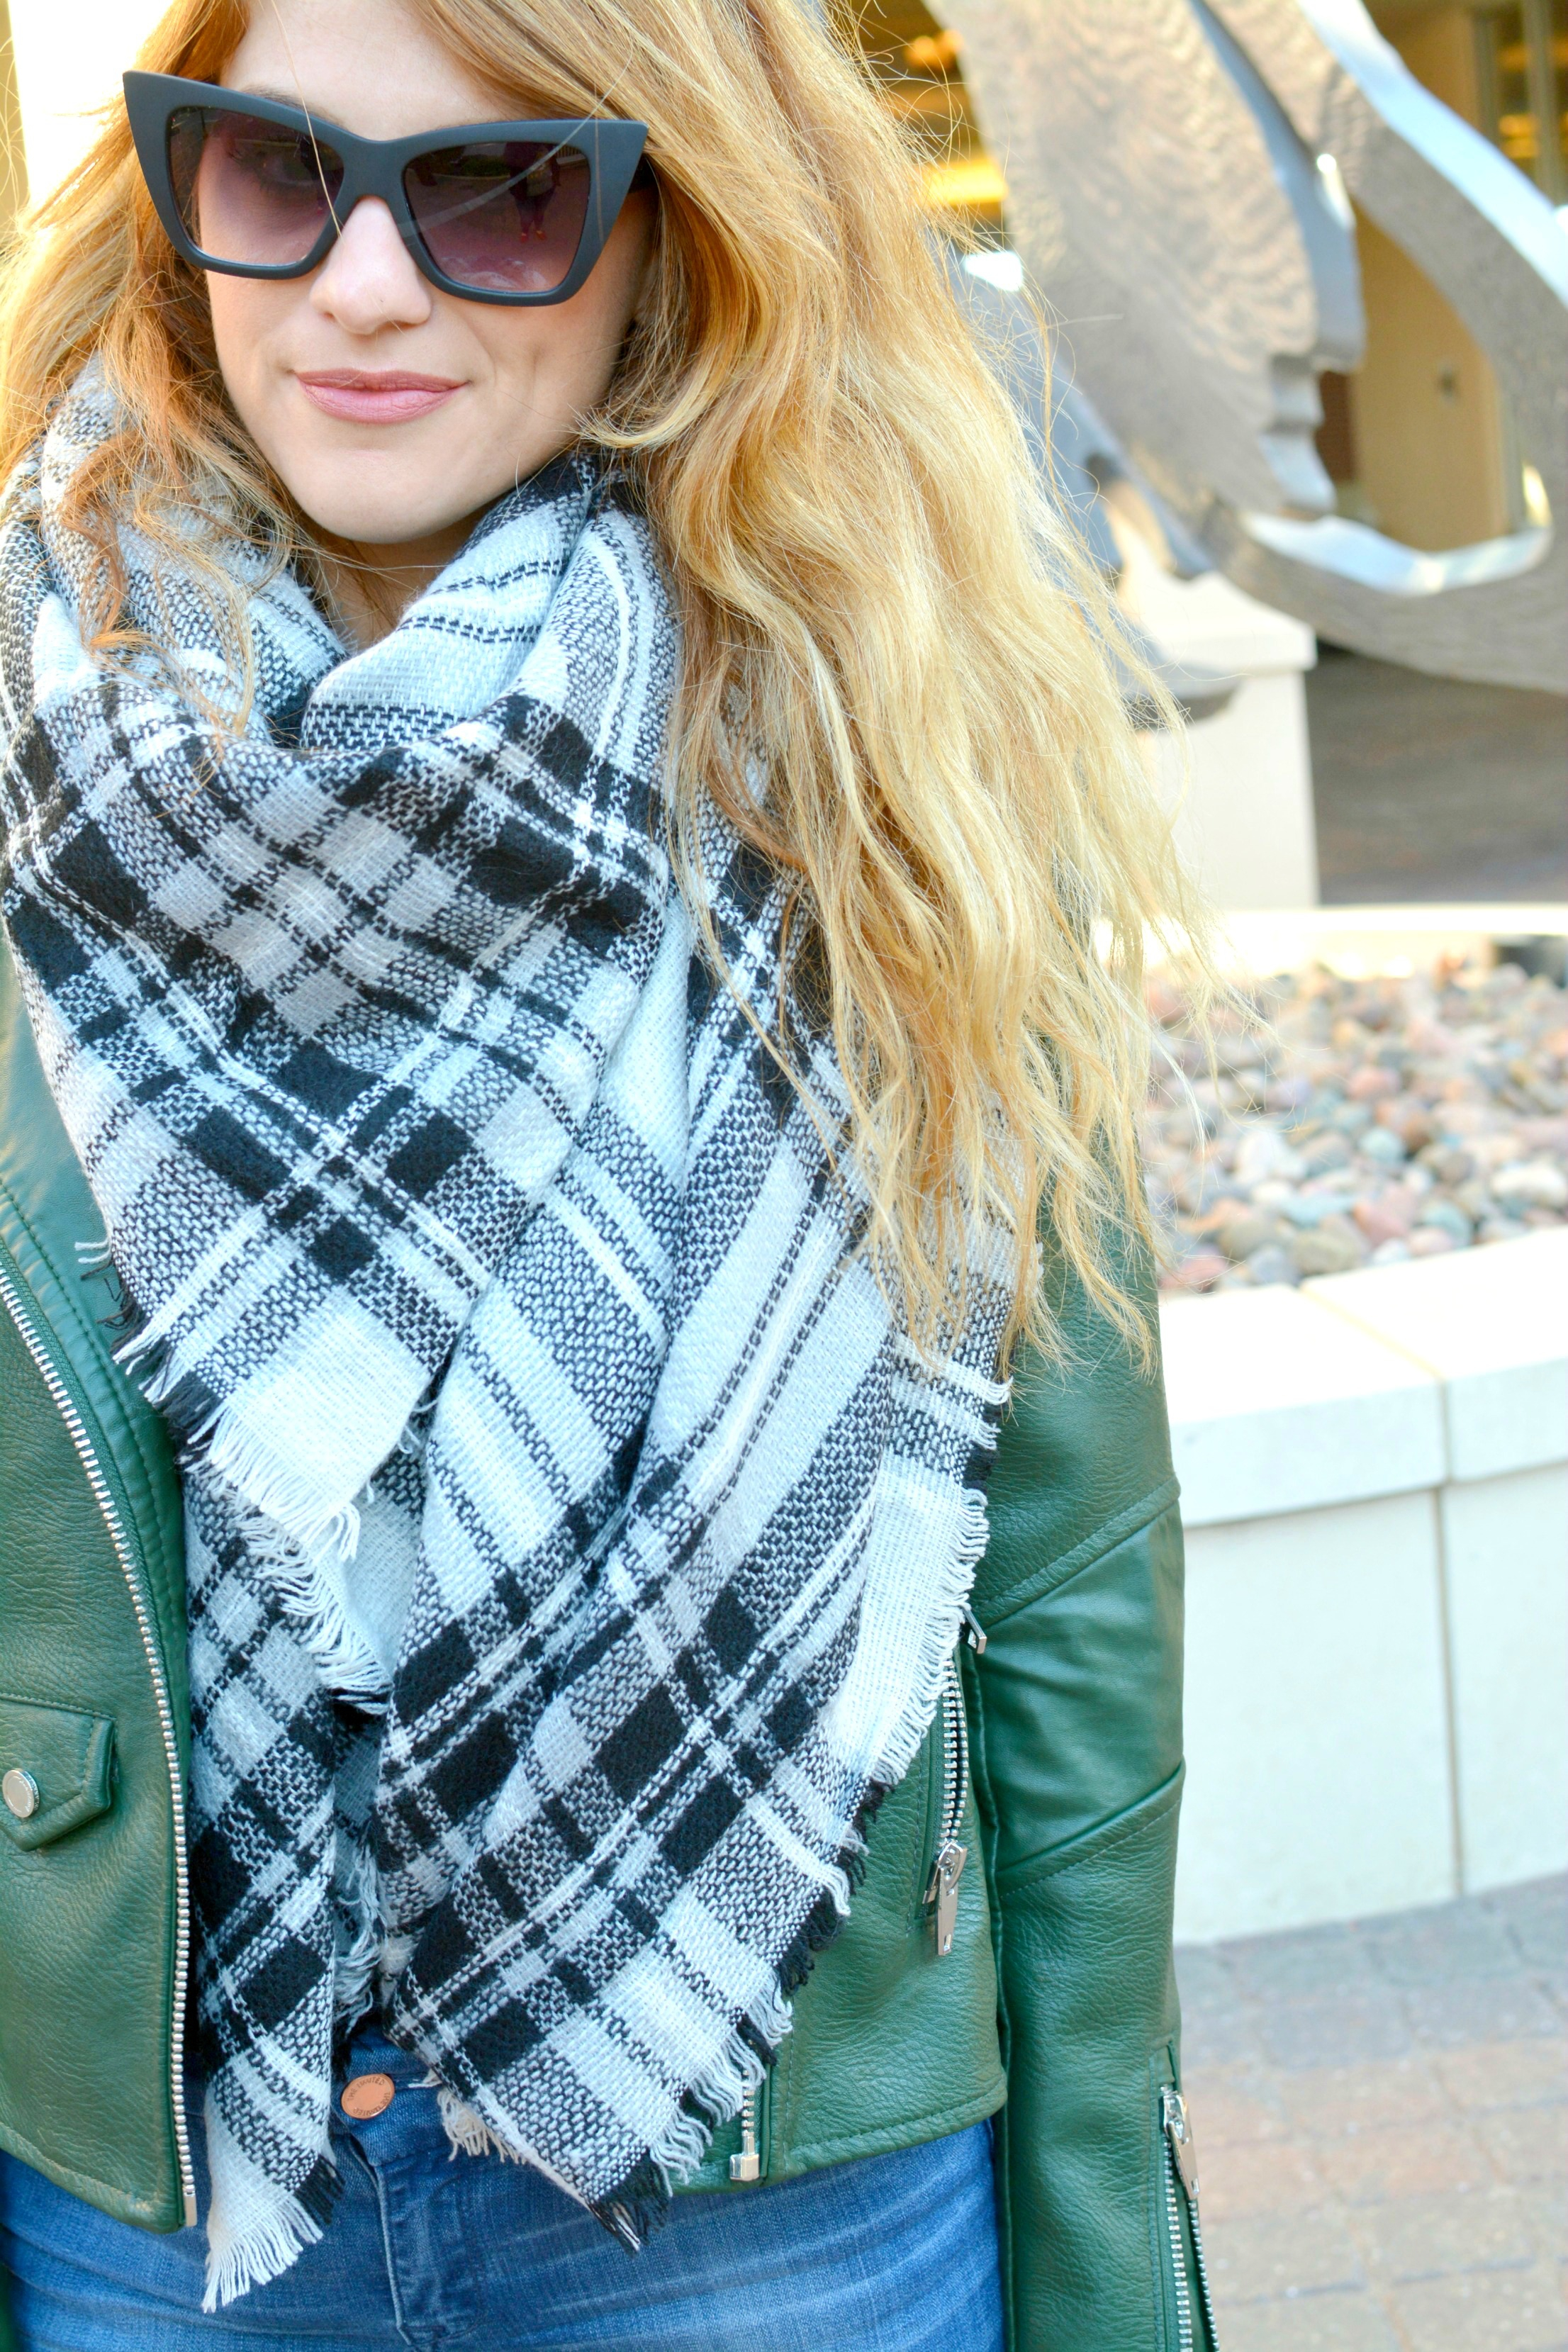 Ashley from LSR in the best faux leather jacket from Blank NYC and a plaid blanket scarf